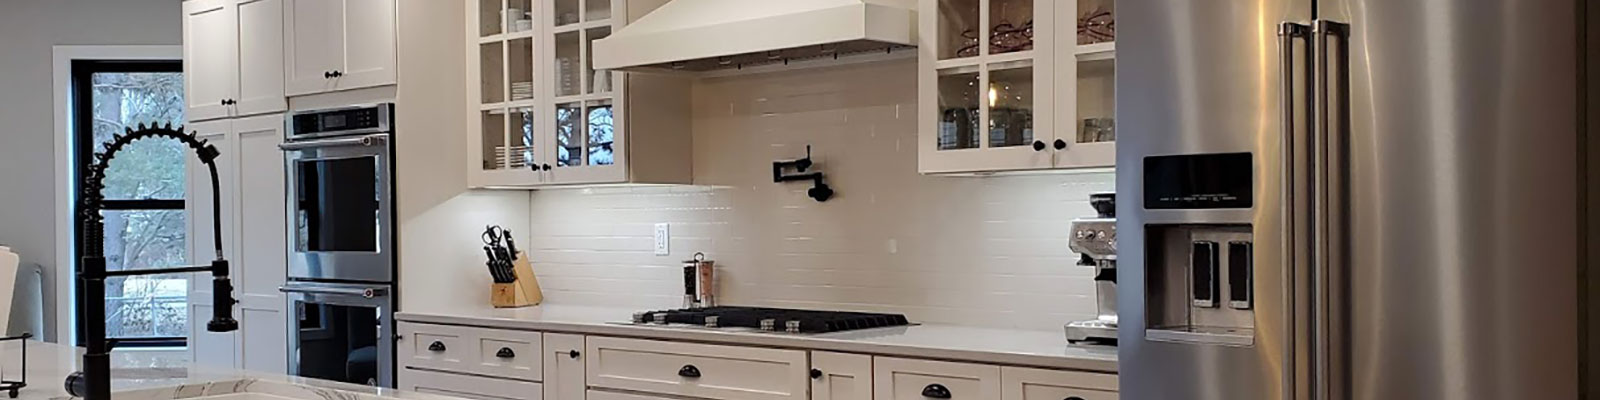 Kitchen and Bathroom Remodeling Contractor – 3 Day Kitchen & Bath